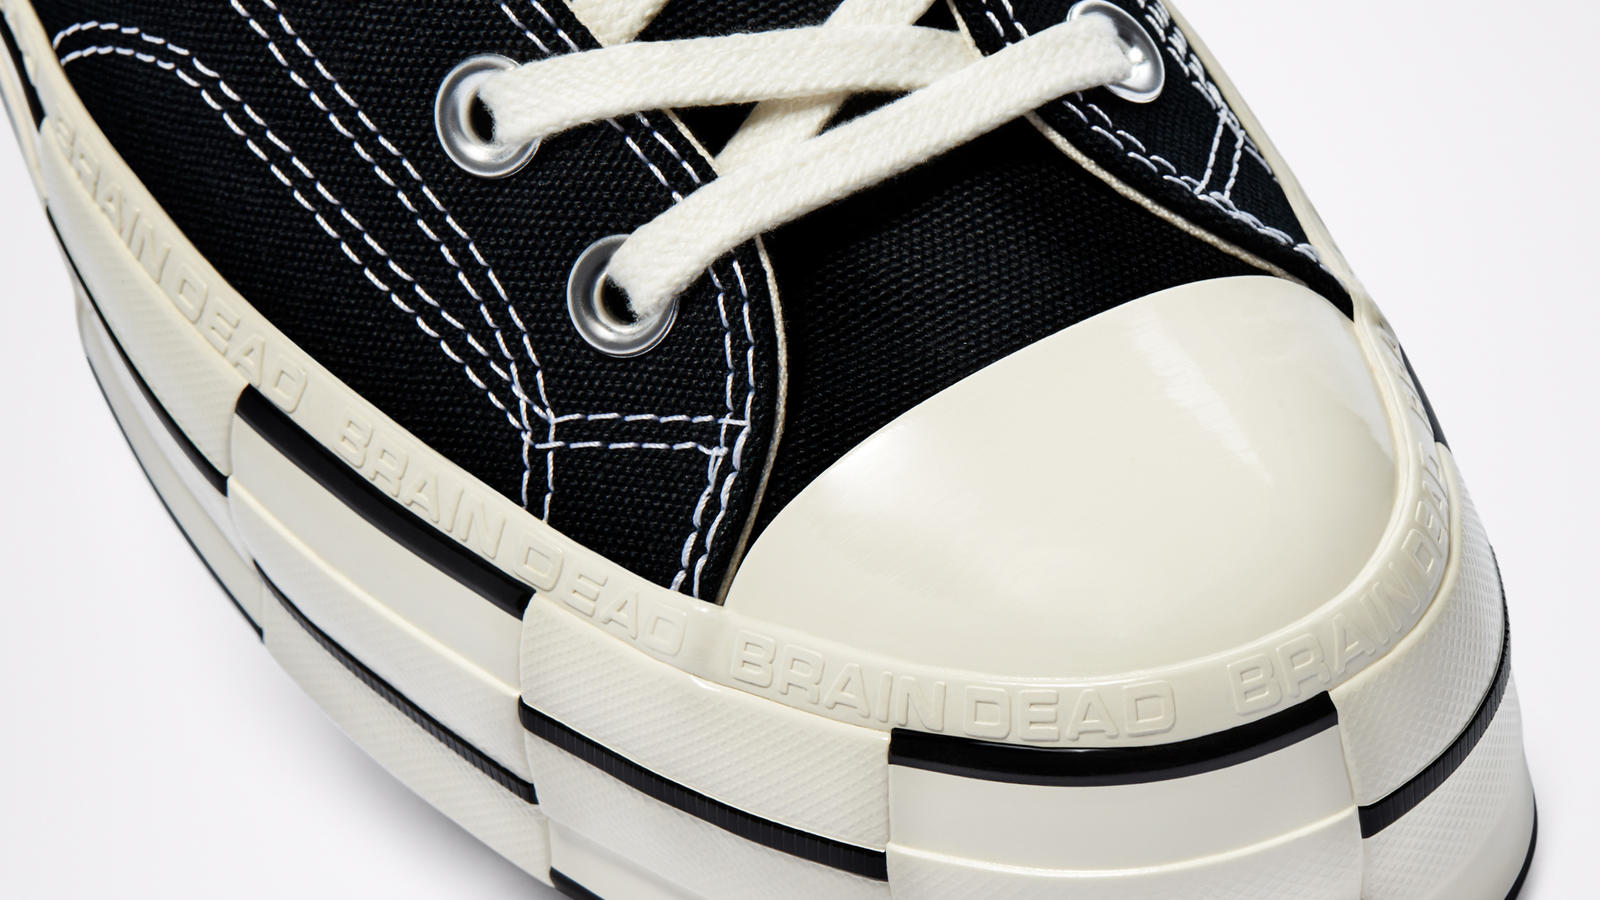 Converse Brain Dead Collaboration HO20 2